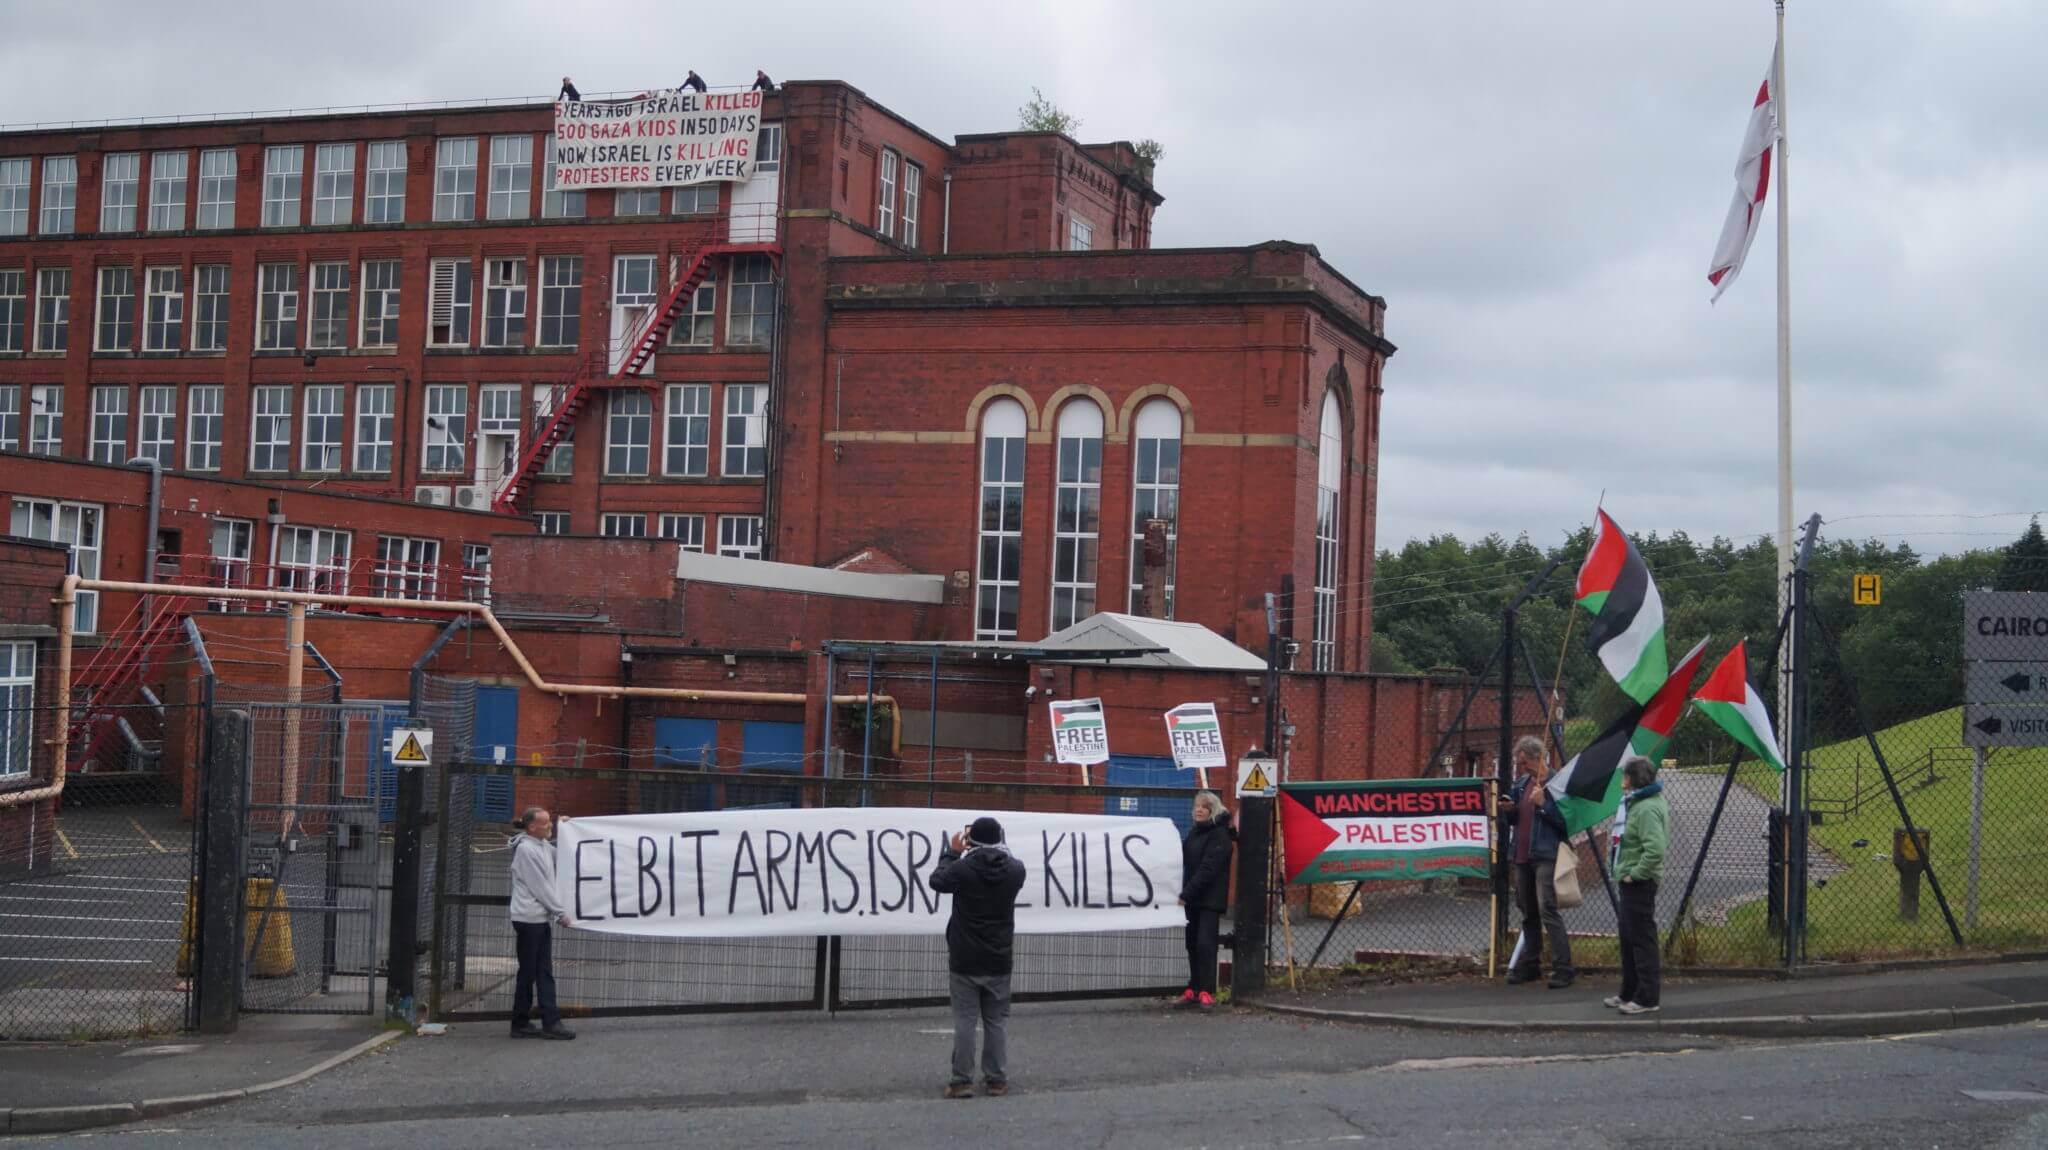 Activists stage a protest on the roof of Elbit Ferranti in Oldham, UK. (Photo: Manchester Action Palestine)